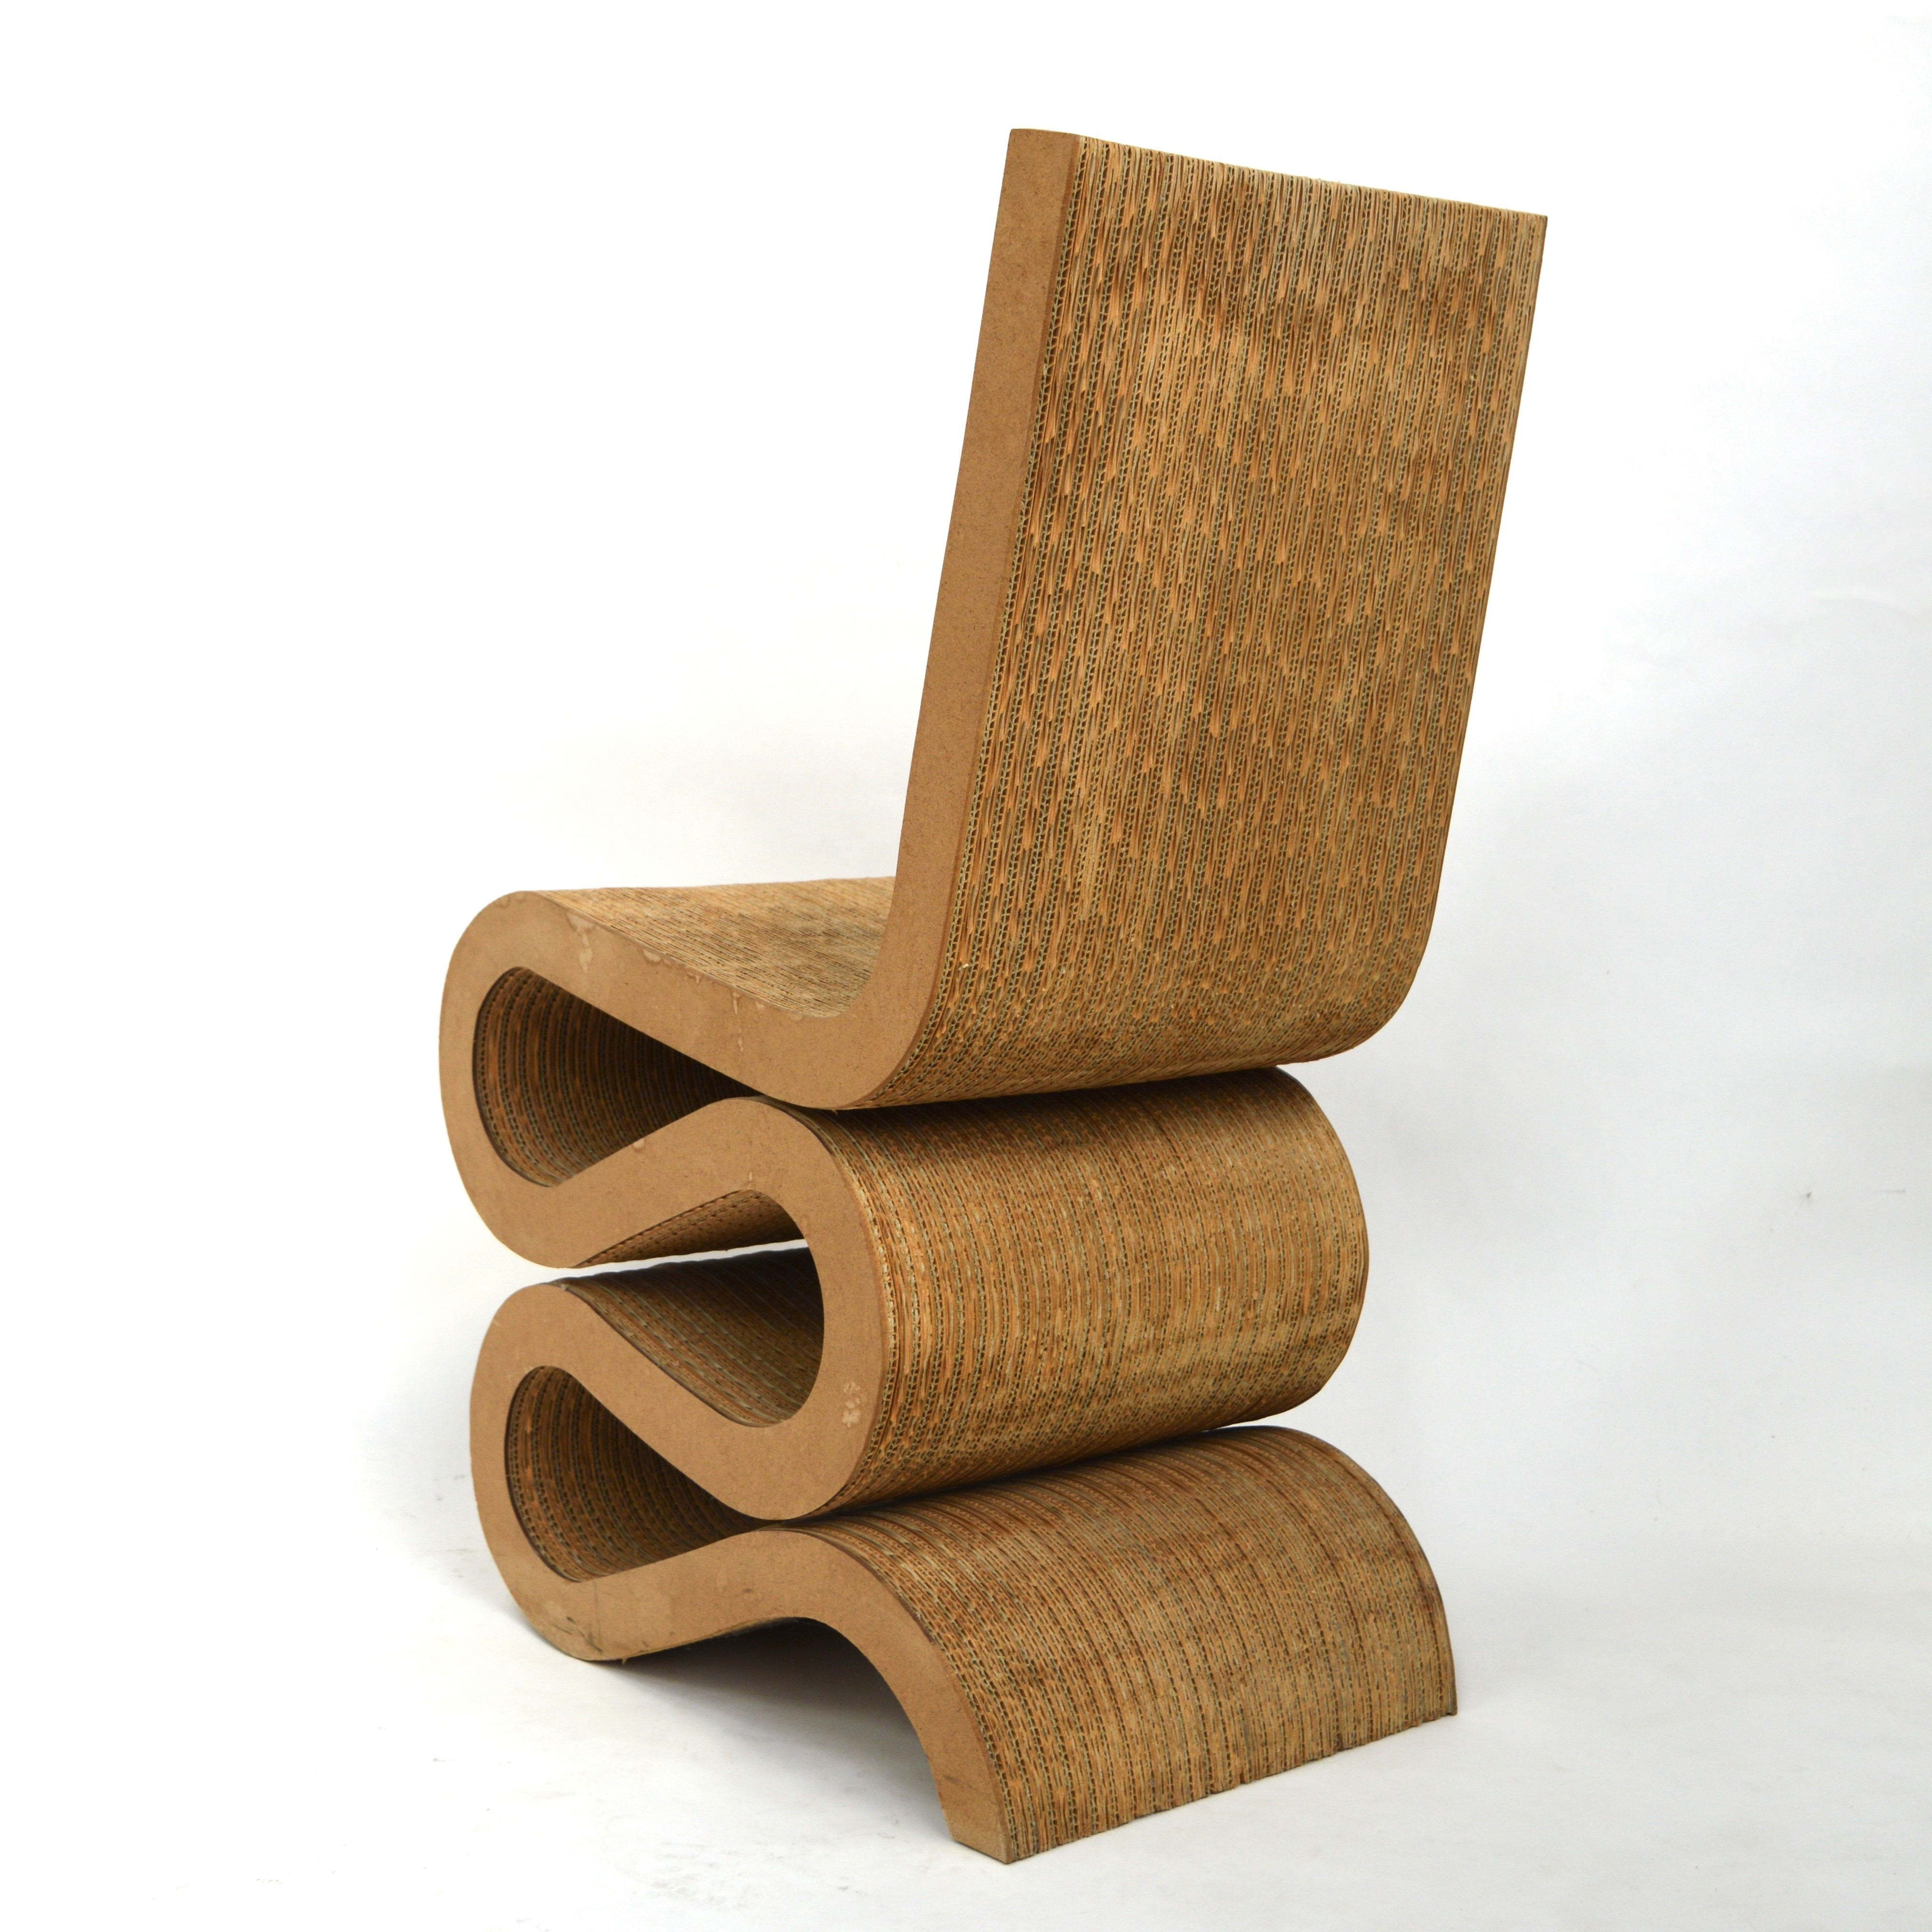 Vintage Wiggle Chair by Frank Gehry  1970s  Design Market